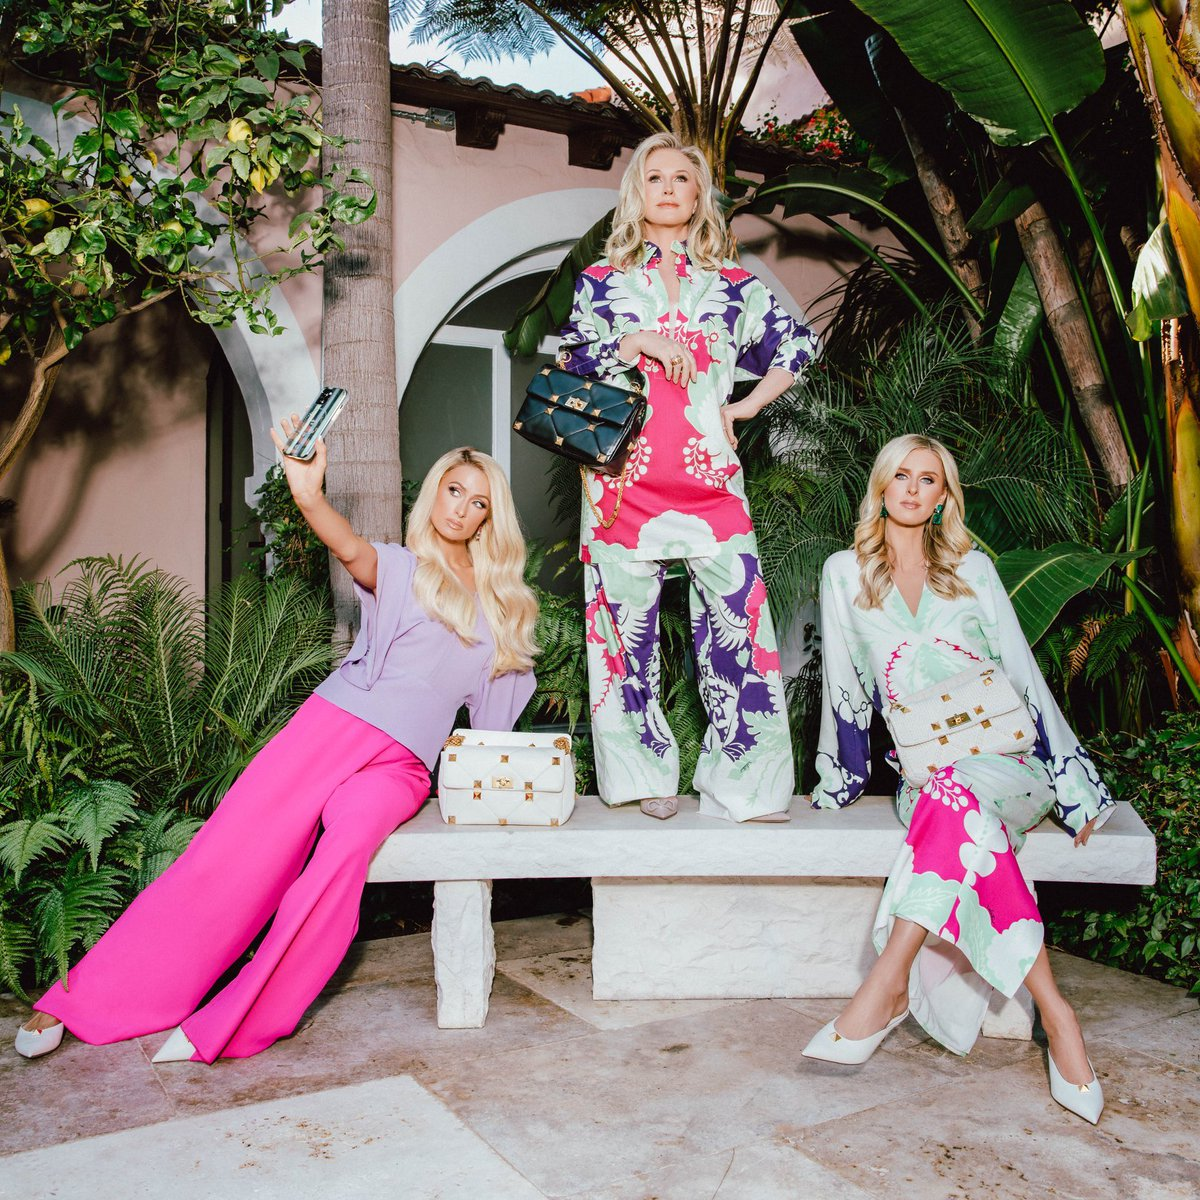 #kathyhilton, #parishilton and #nickyhilton in full Valentino looks at the , each carrying the new Valentino Garavani #RomanStud bag in a range of styles, from black and white nappa leather to a special knitted version.